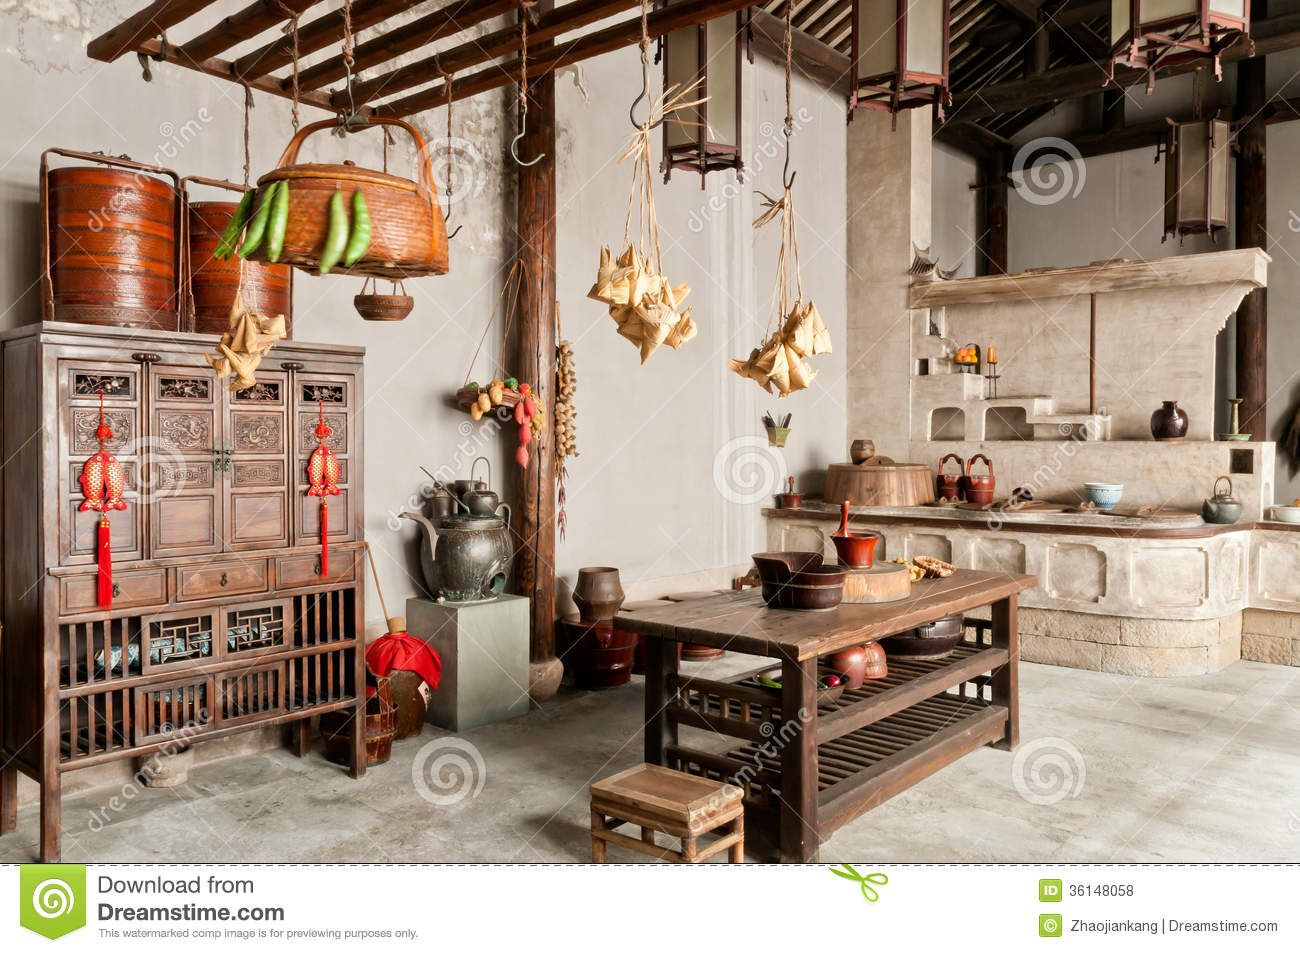 China Old Kitchen Furnishings   Download From Over 45 Million High Quality  Stock Photos, Images, Vectors. Sign Up For FREE Today. Image: 36148058